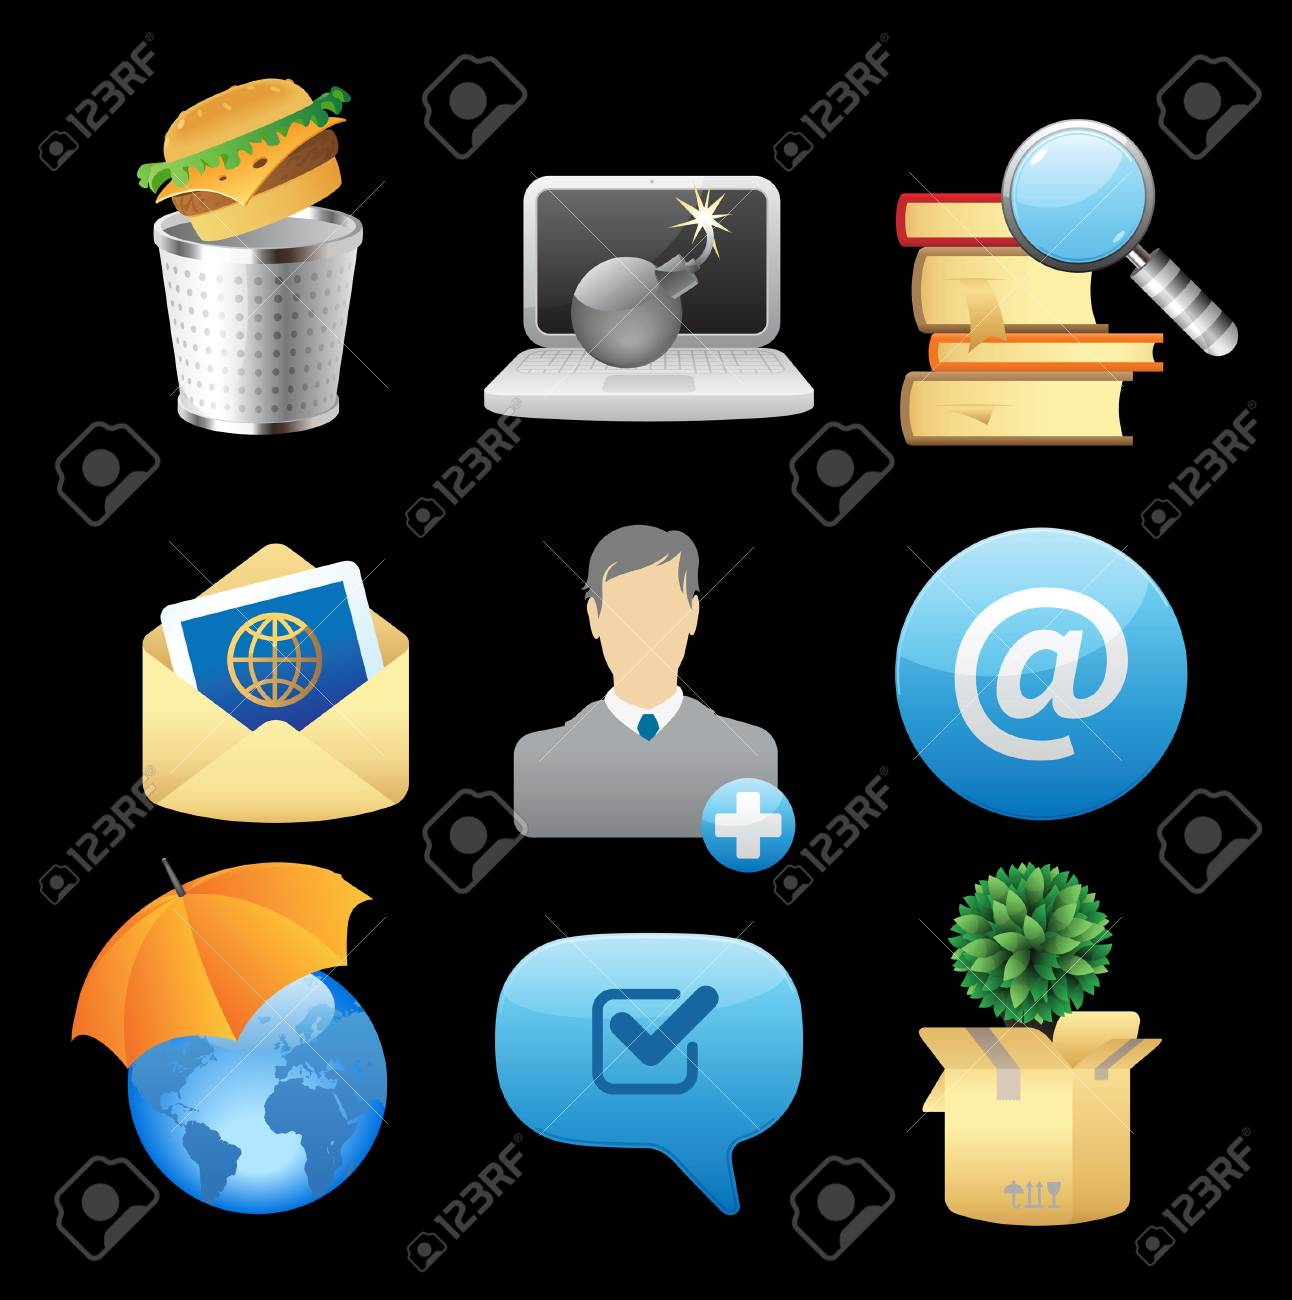 Icons for concepts and metaphor. Vector illustration. Stock Vector - 12885922